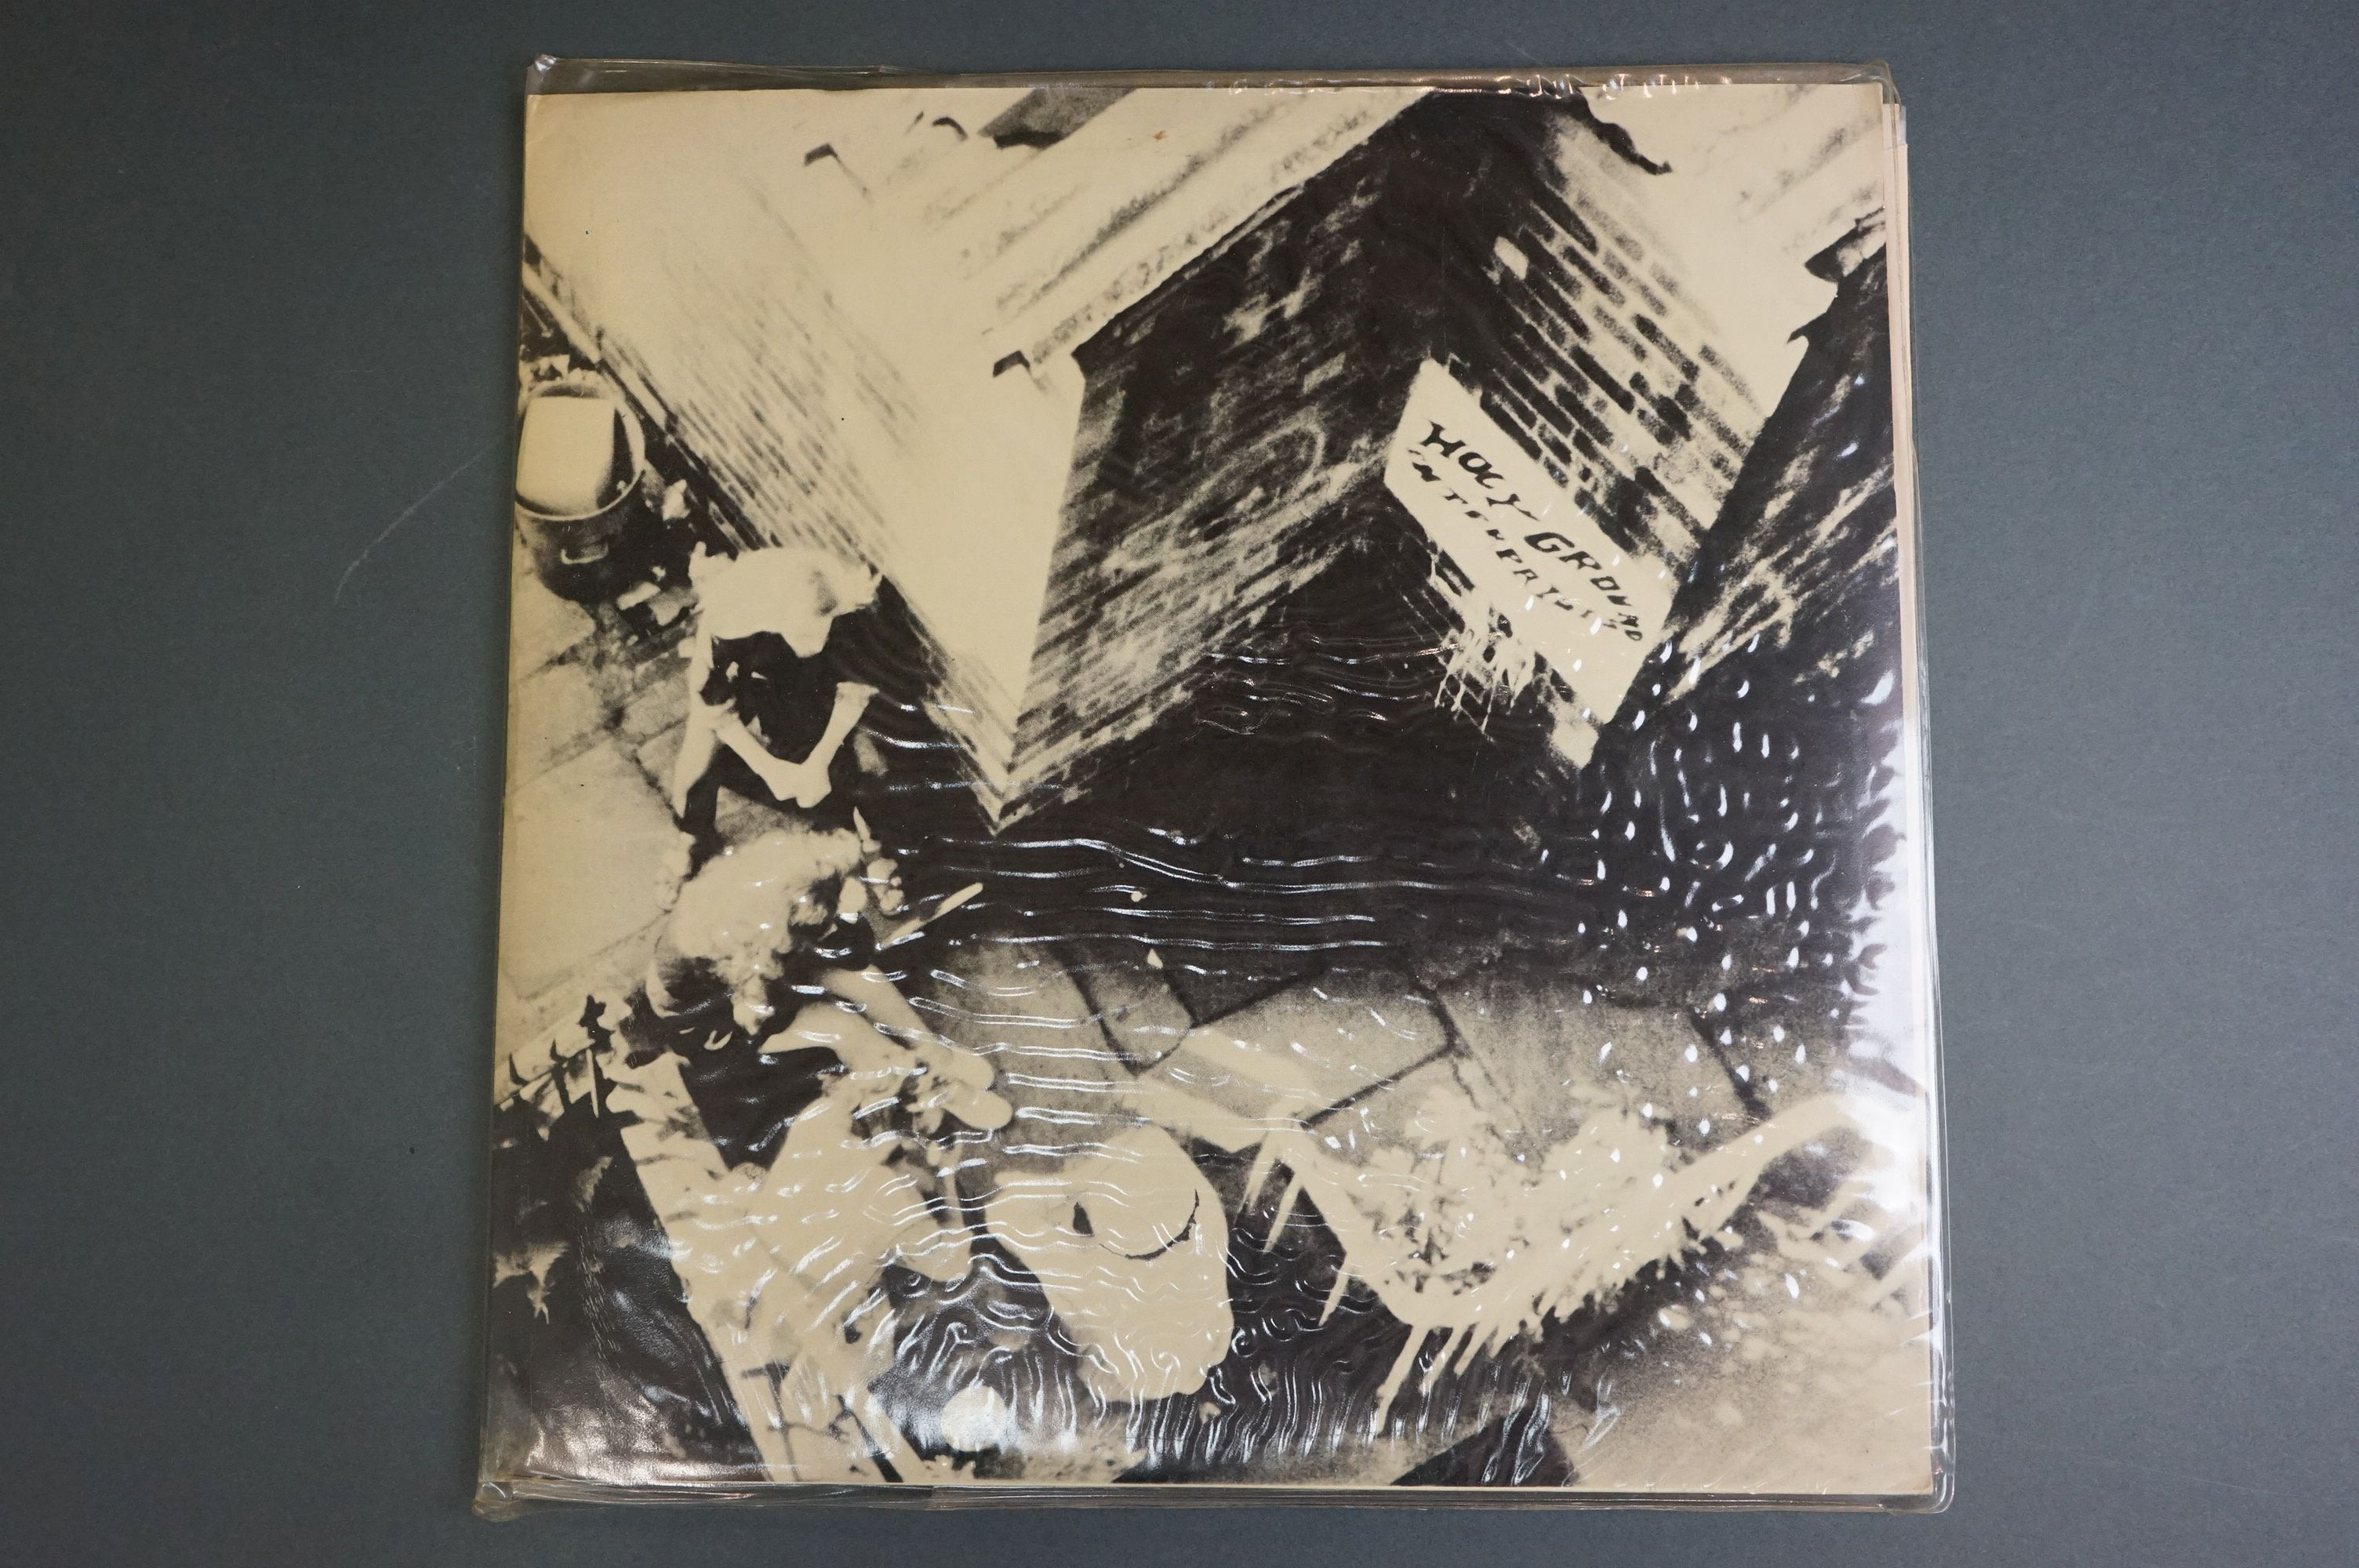 Vinyl - Compilation Loose Routers Music From Holyground 1966-1975 MG121 Double Album, 1991